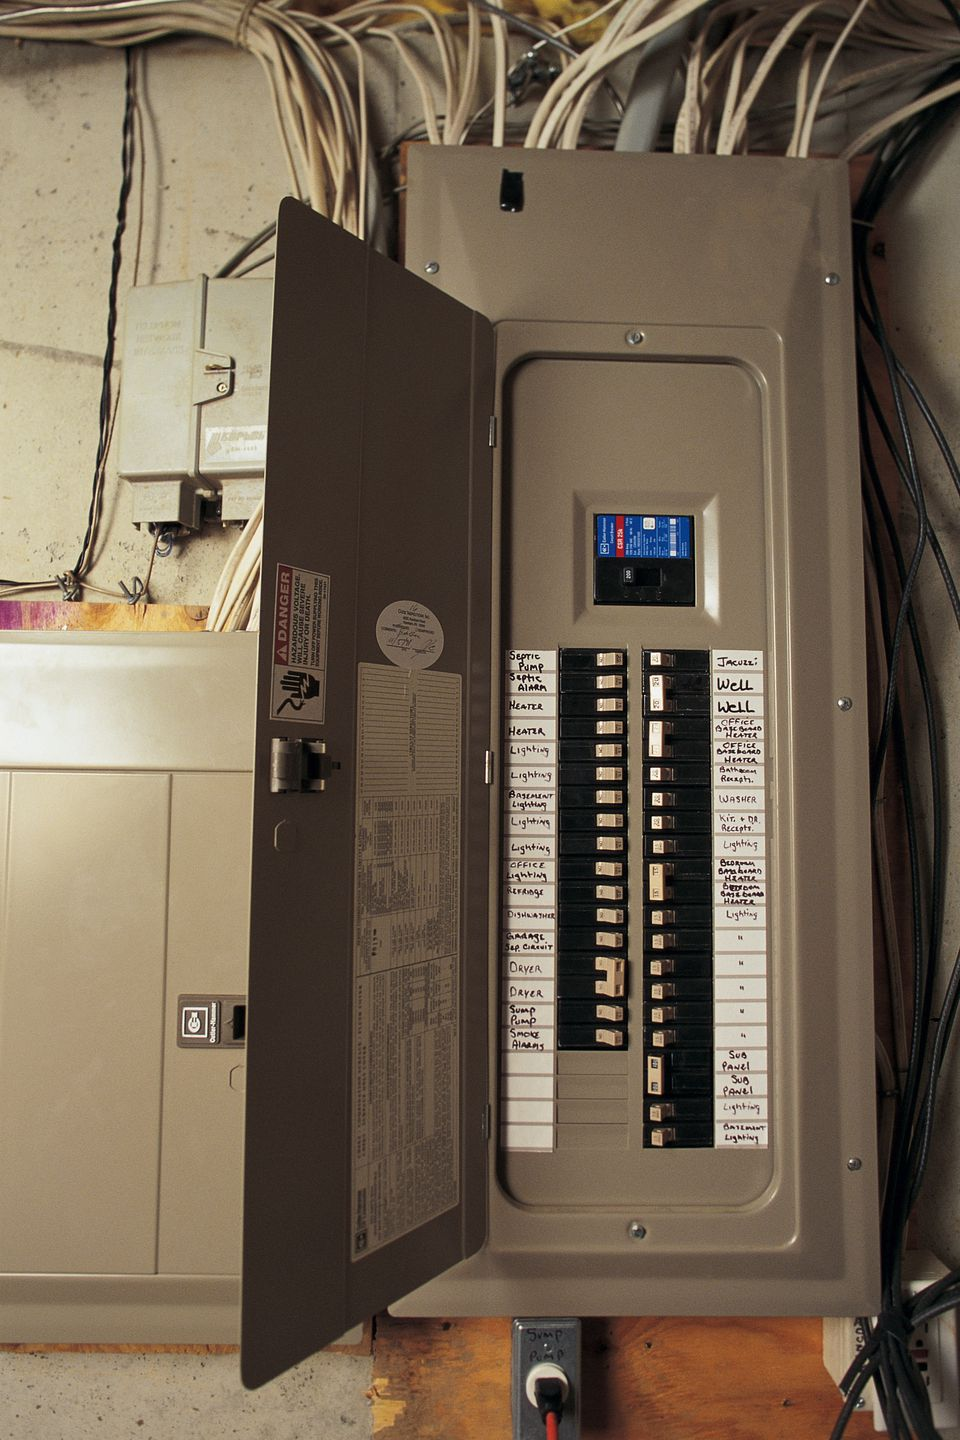 Fuse Box Or Breaker Box : Circuit breaker boxes service panel checklist